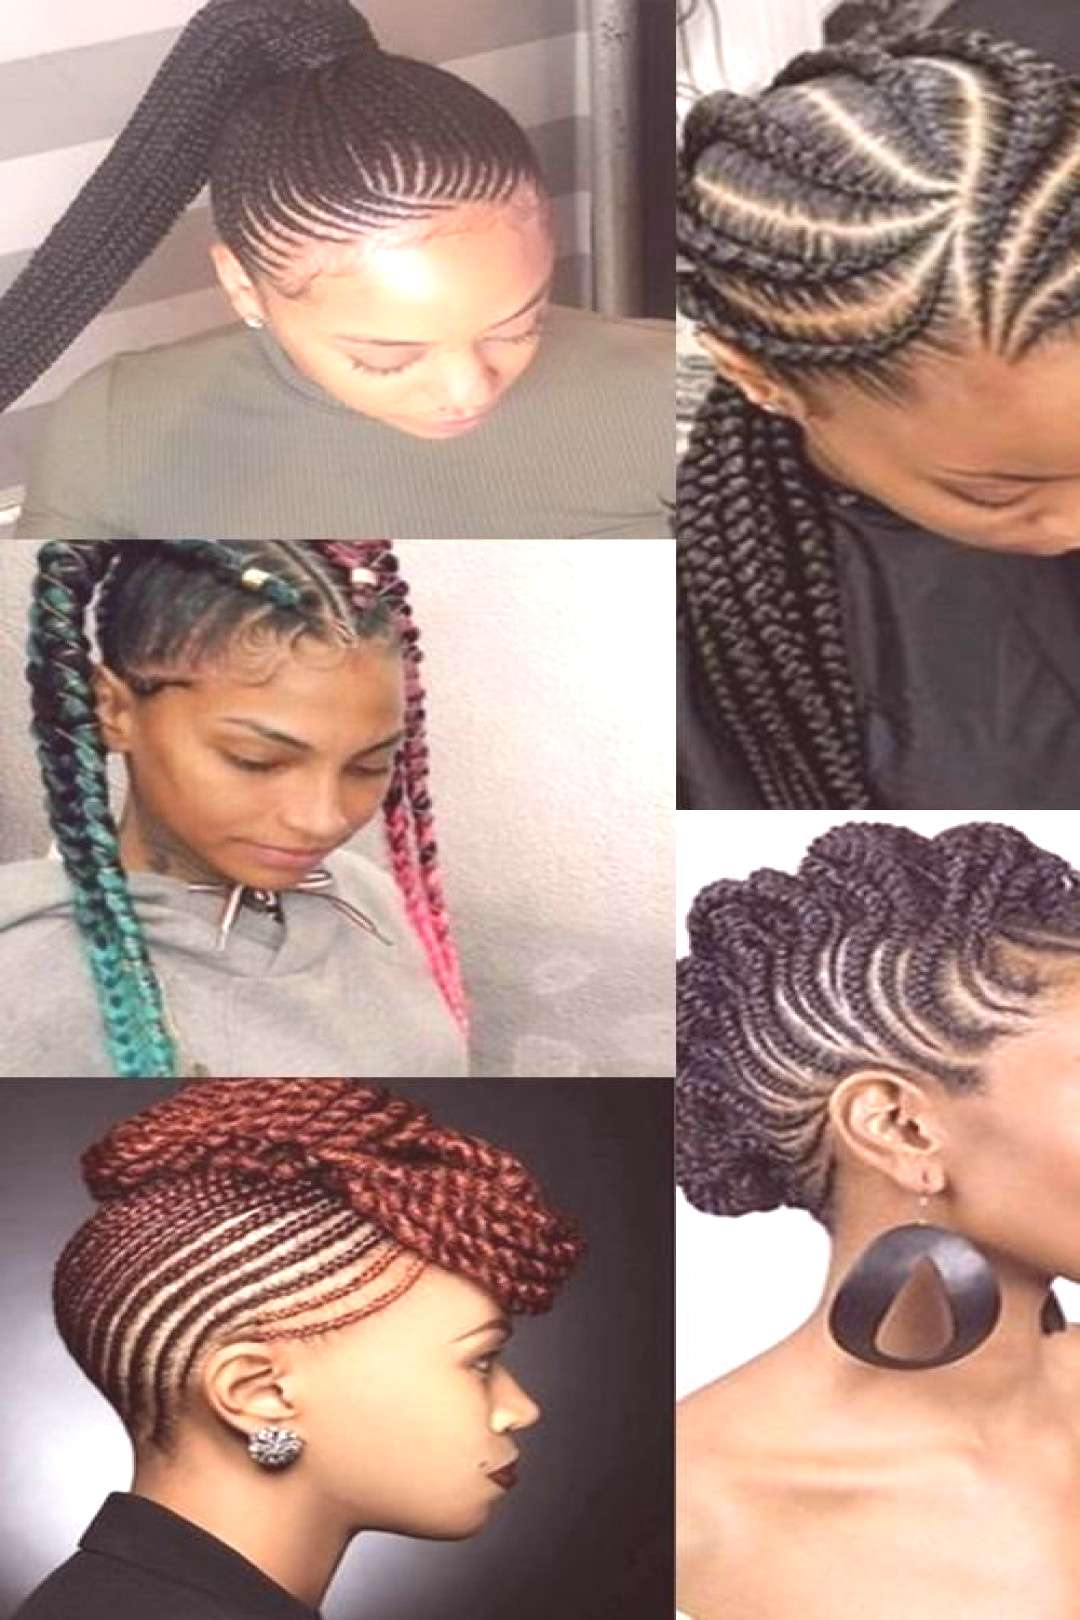 Braids    Pictures Of Ghana Braids Styles Ideas ghana weaving hairstyles fr android apk he